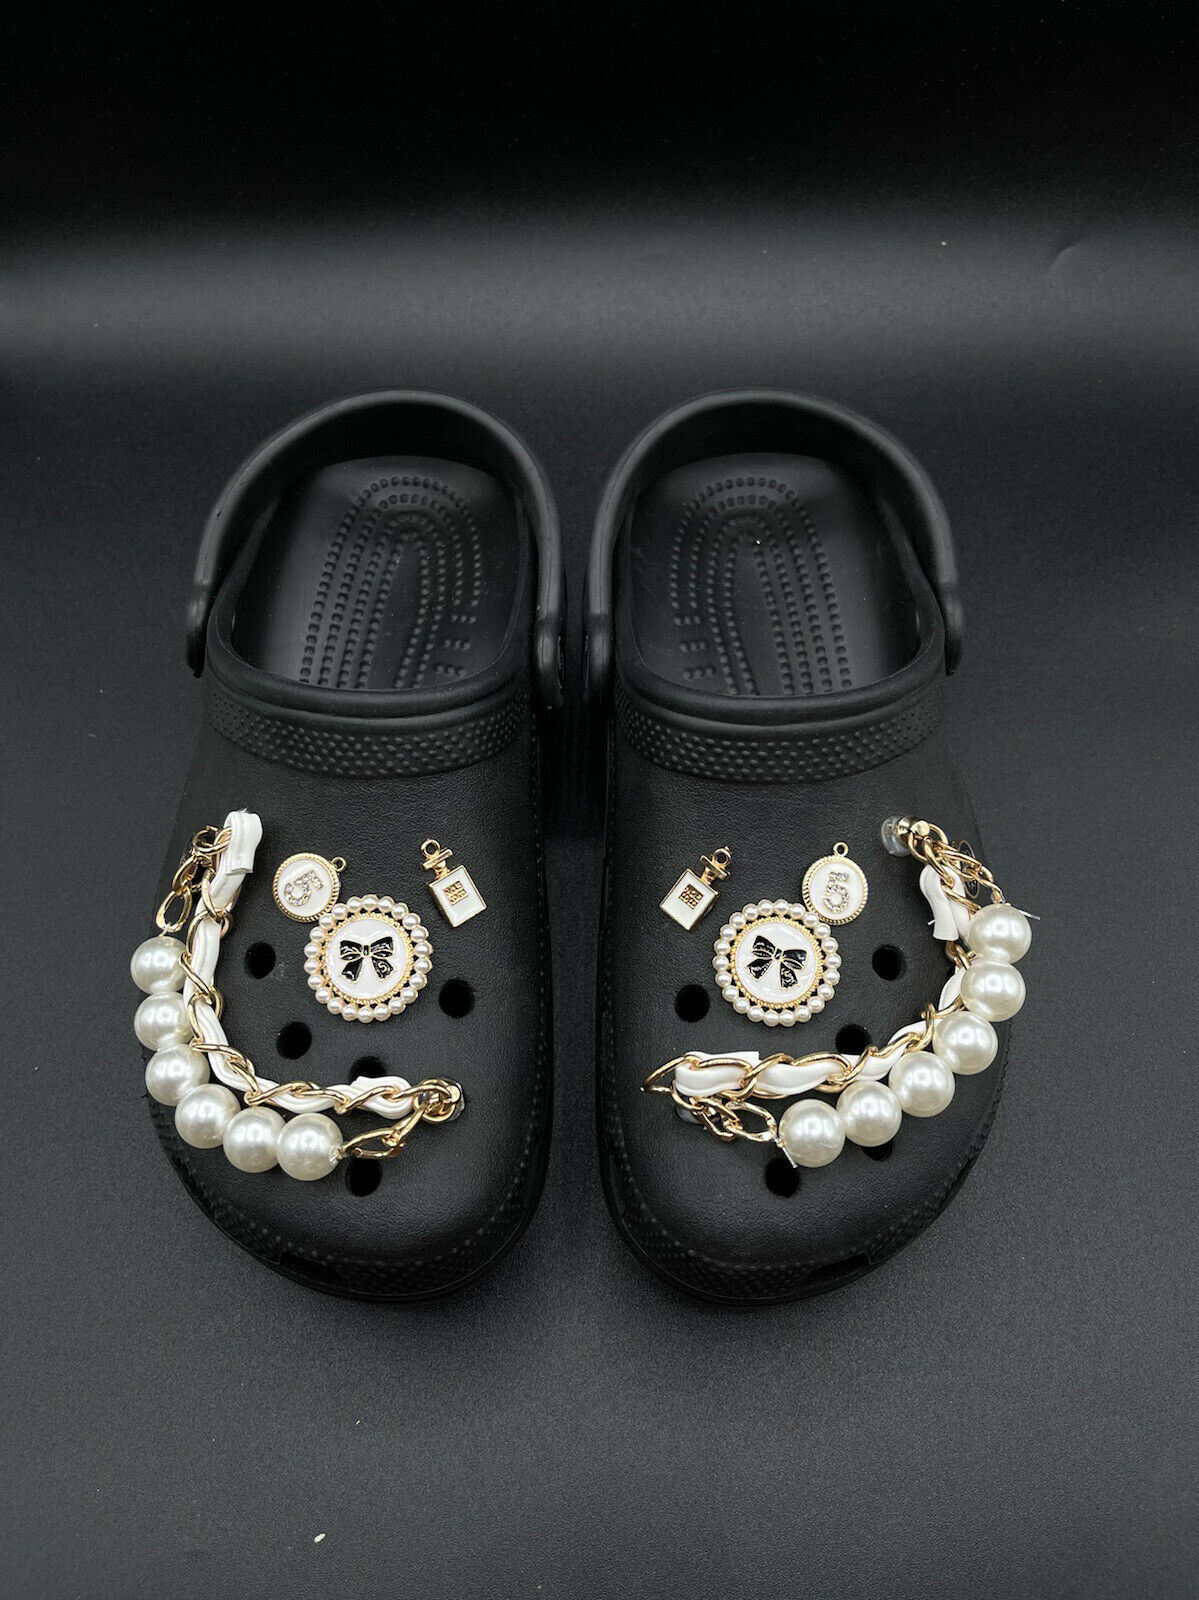 Luxury Gold/White Leather Chain Charms For Crocs. Suitable For Adult Crocs.